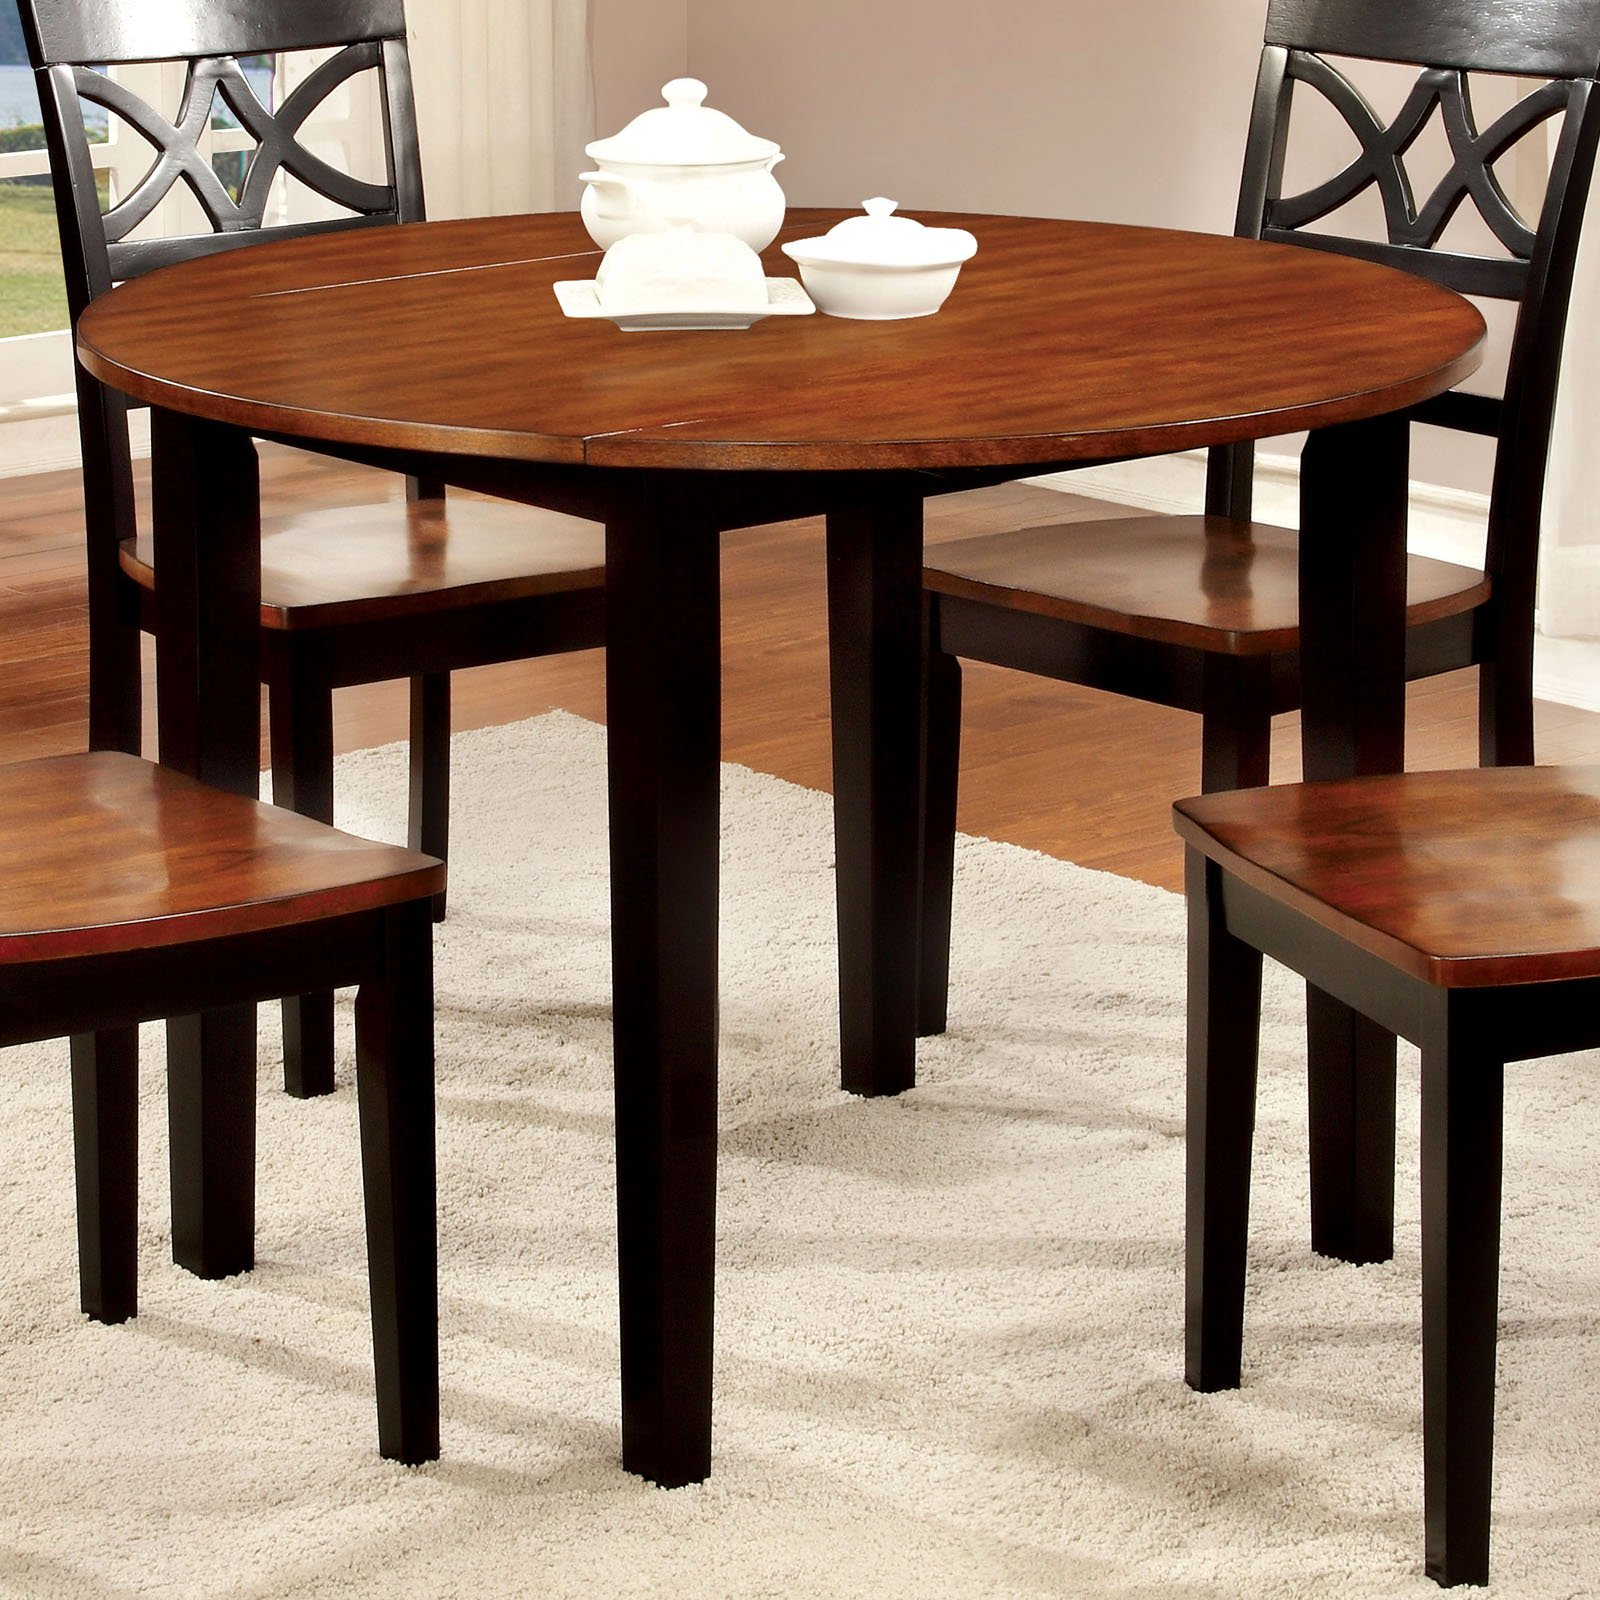 Furniture of America Lohman Dual-Tone Round Dining Table